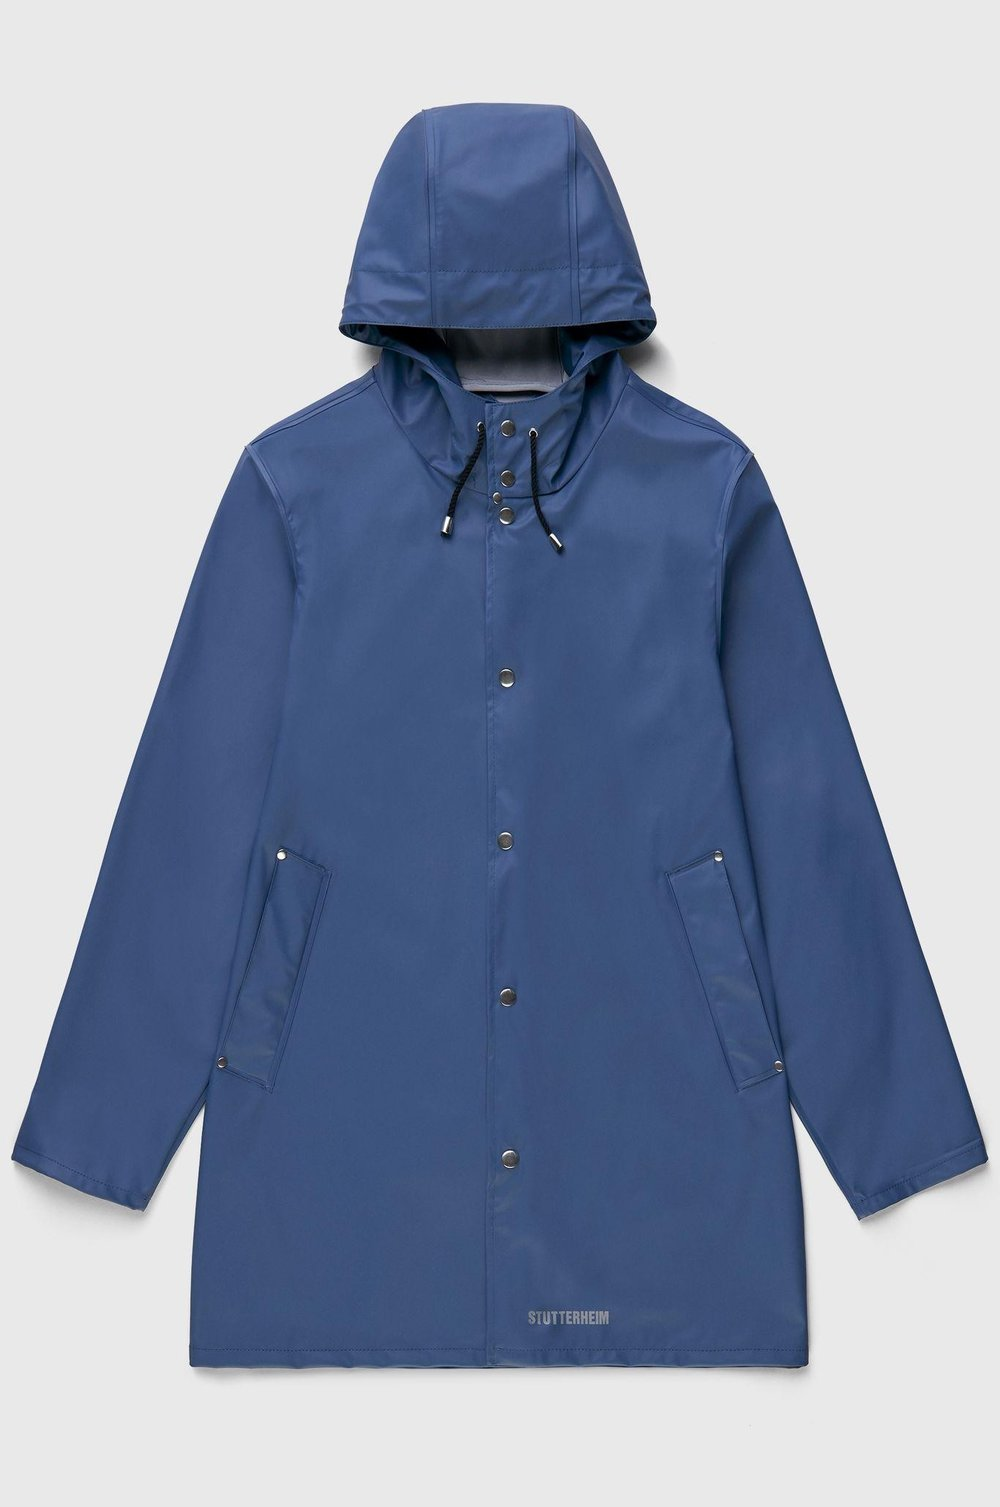 Stutterheim raincoat - £185 - Ready for the impending season of never ending rain